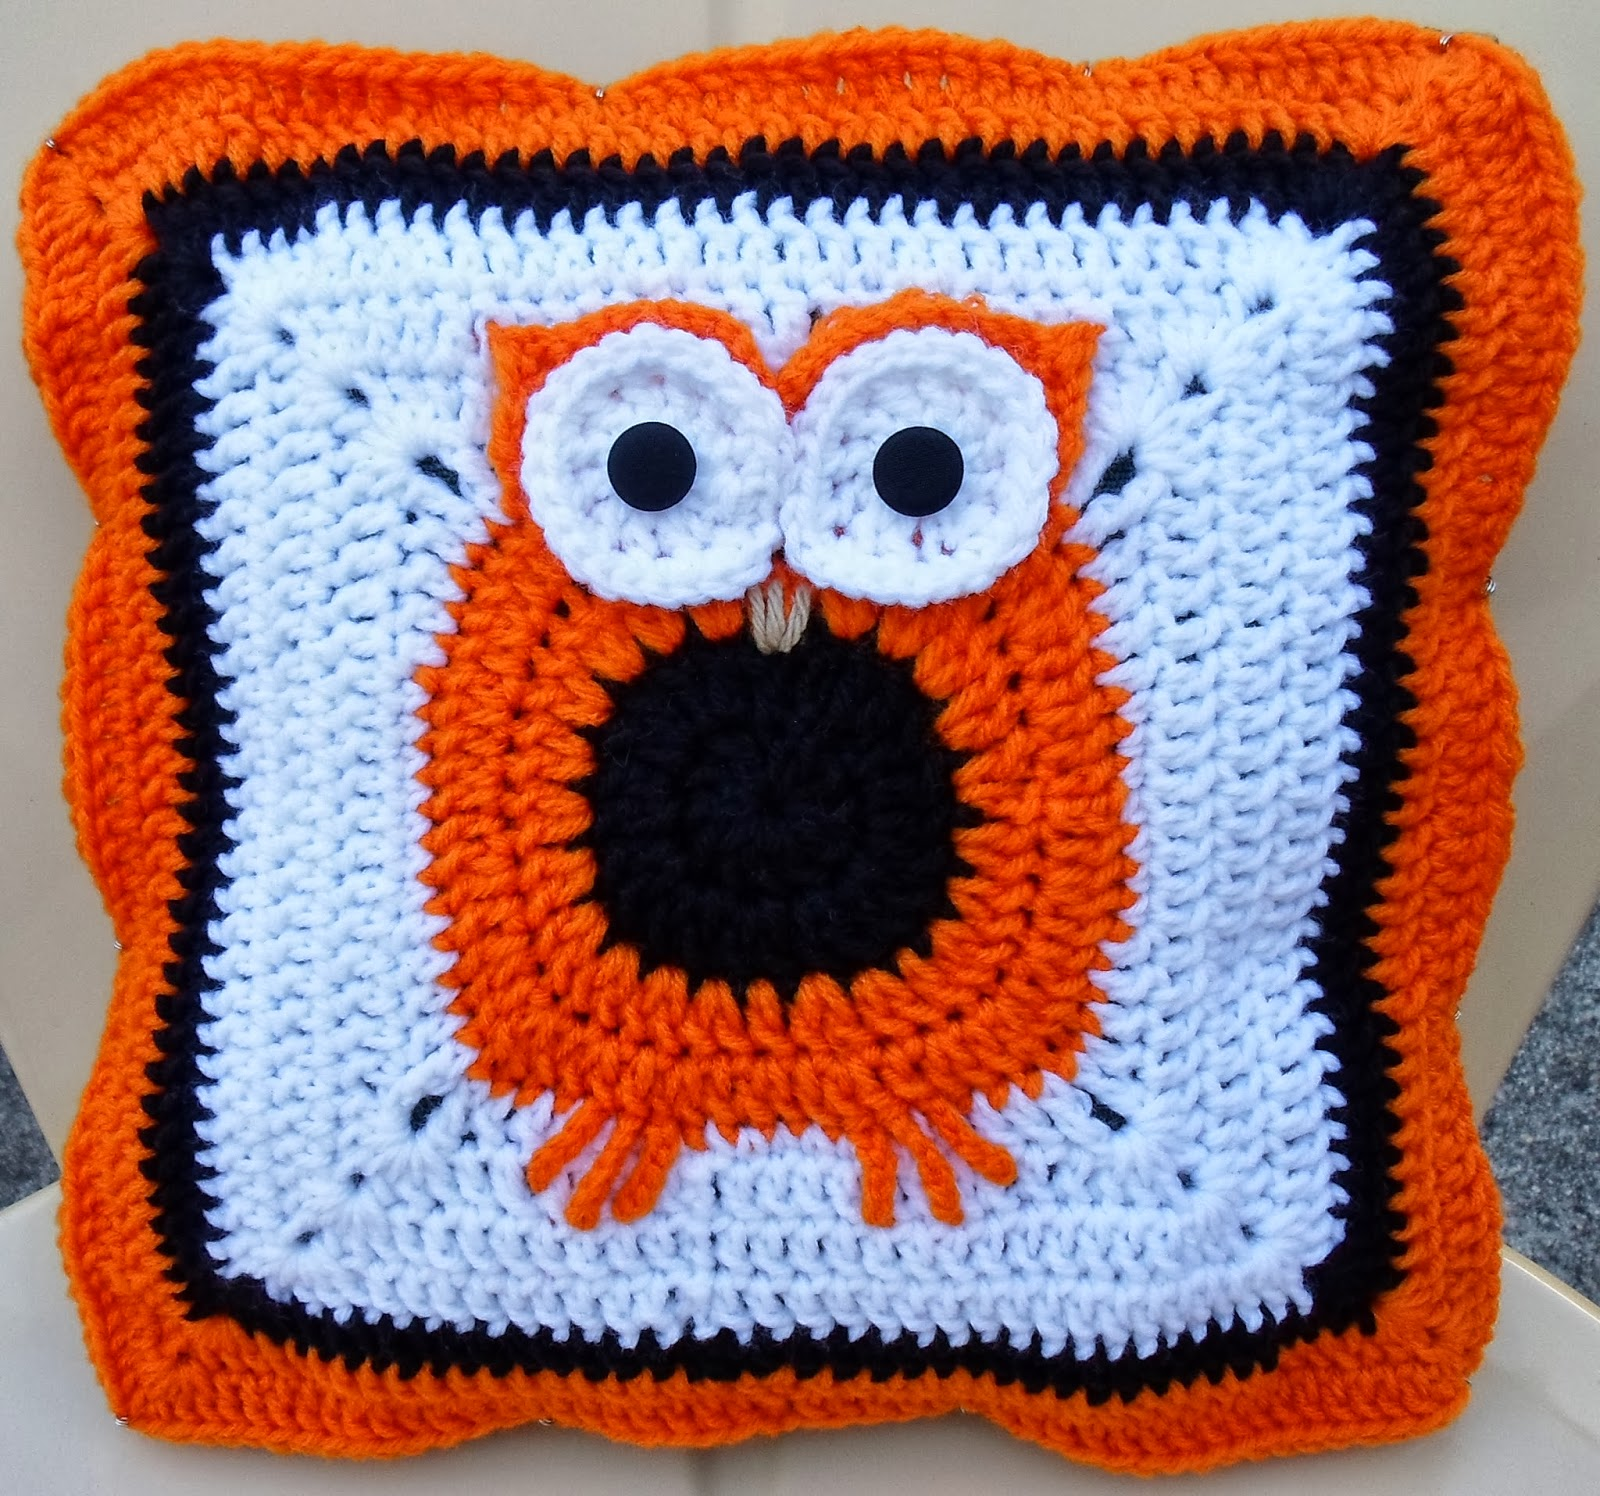 Happier than a pig in mud crochet owl pillow cover pattern crochet owl pillow cover pattern bankloansurffo Gallery